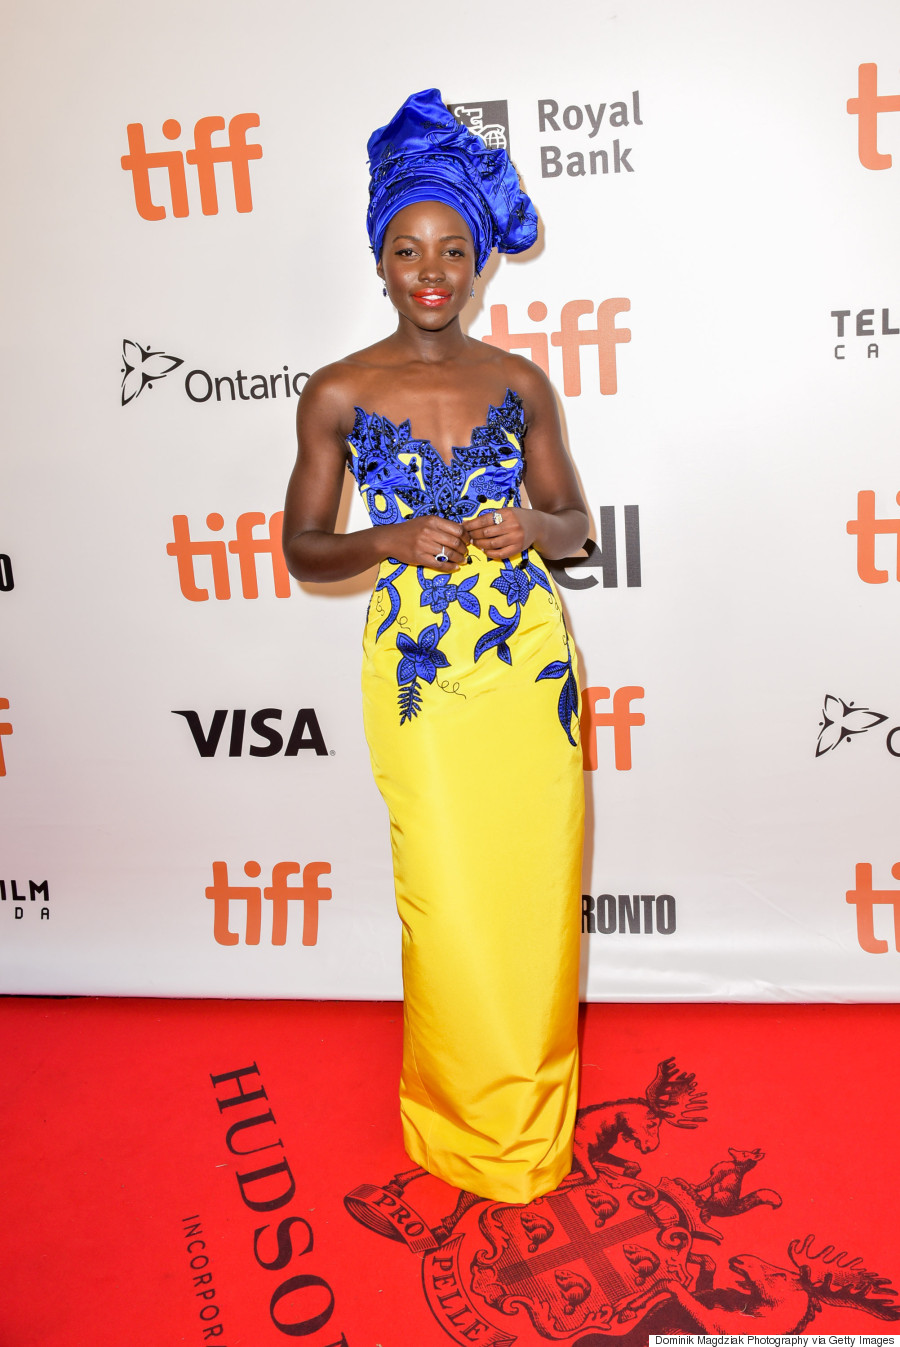 The dress he wore toronto - Donning An African Inspired Custom Vibrant Blue And Canary Yellow Strapless Gown From House Of Herrera The 33 Year Old Actress Said It Was Wonderful To